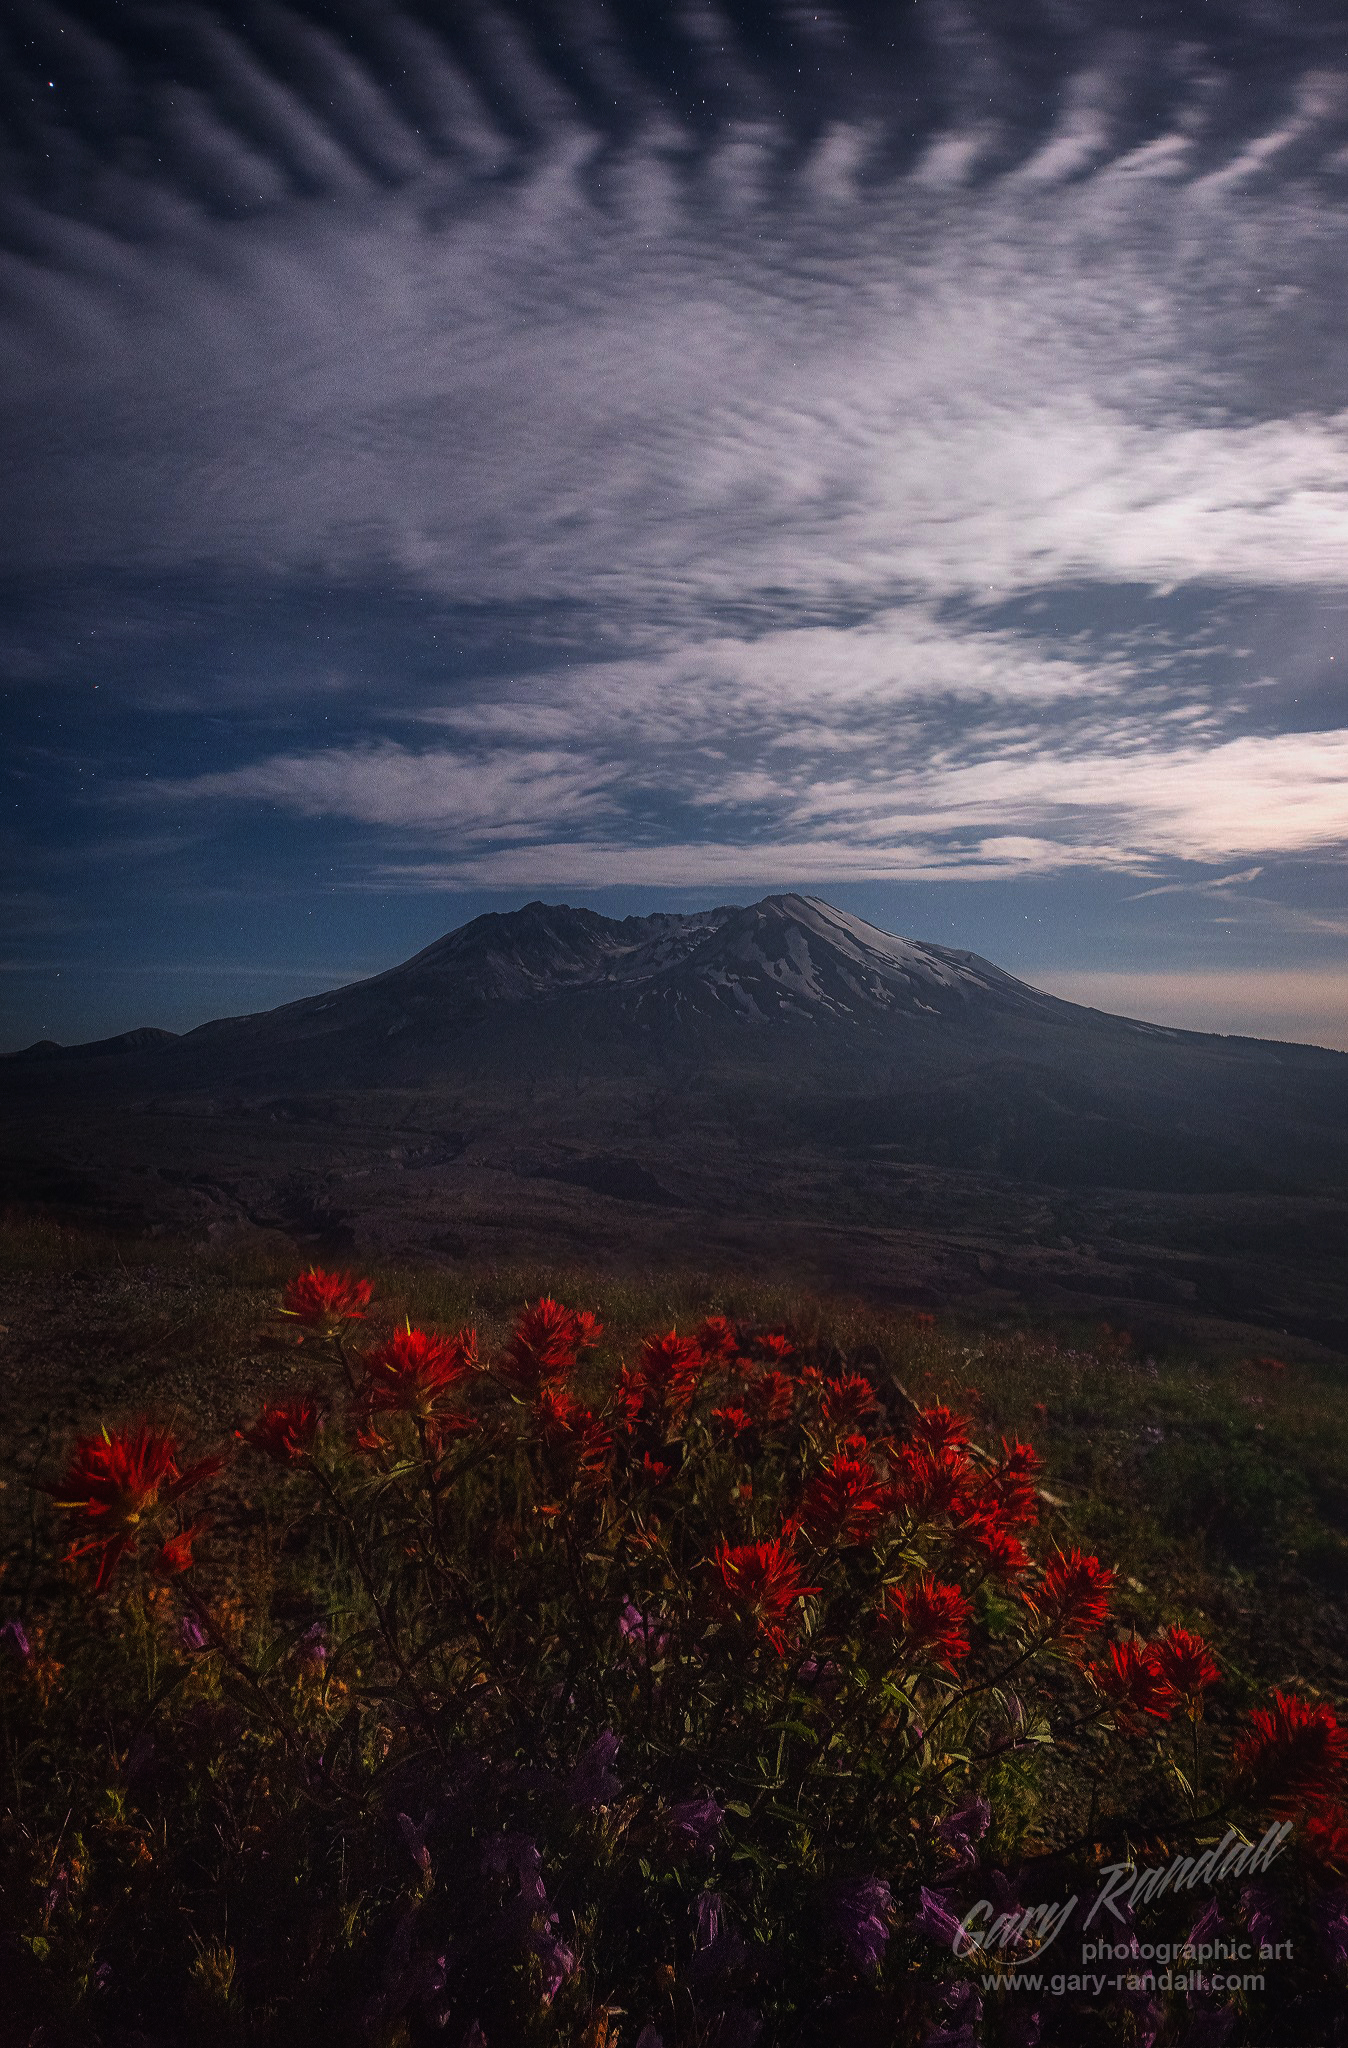 Mount St Helens in the moonlight